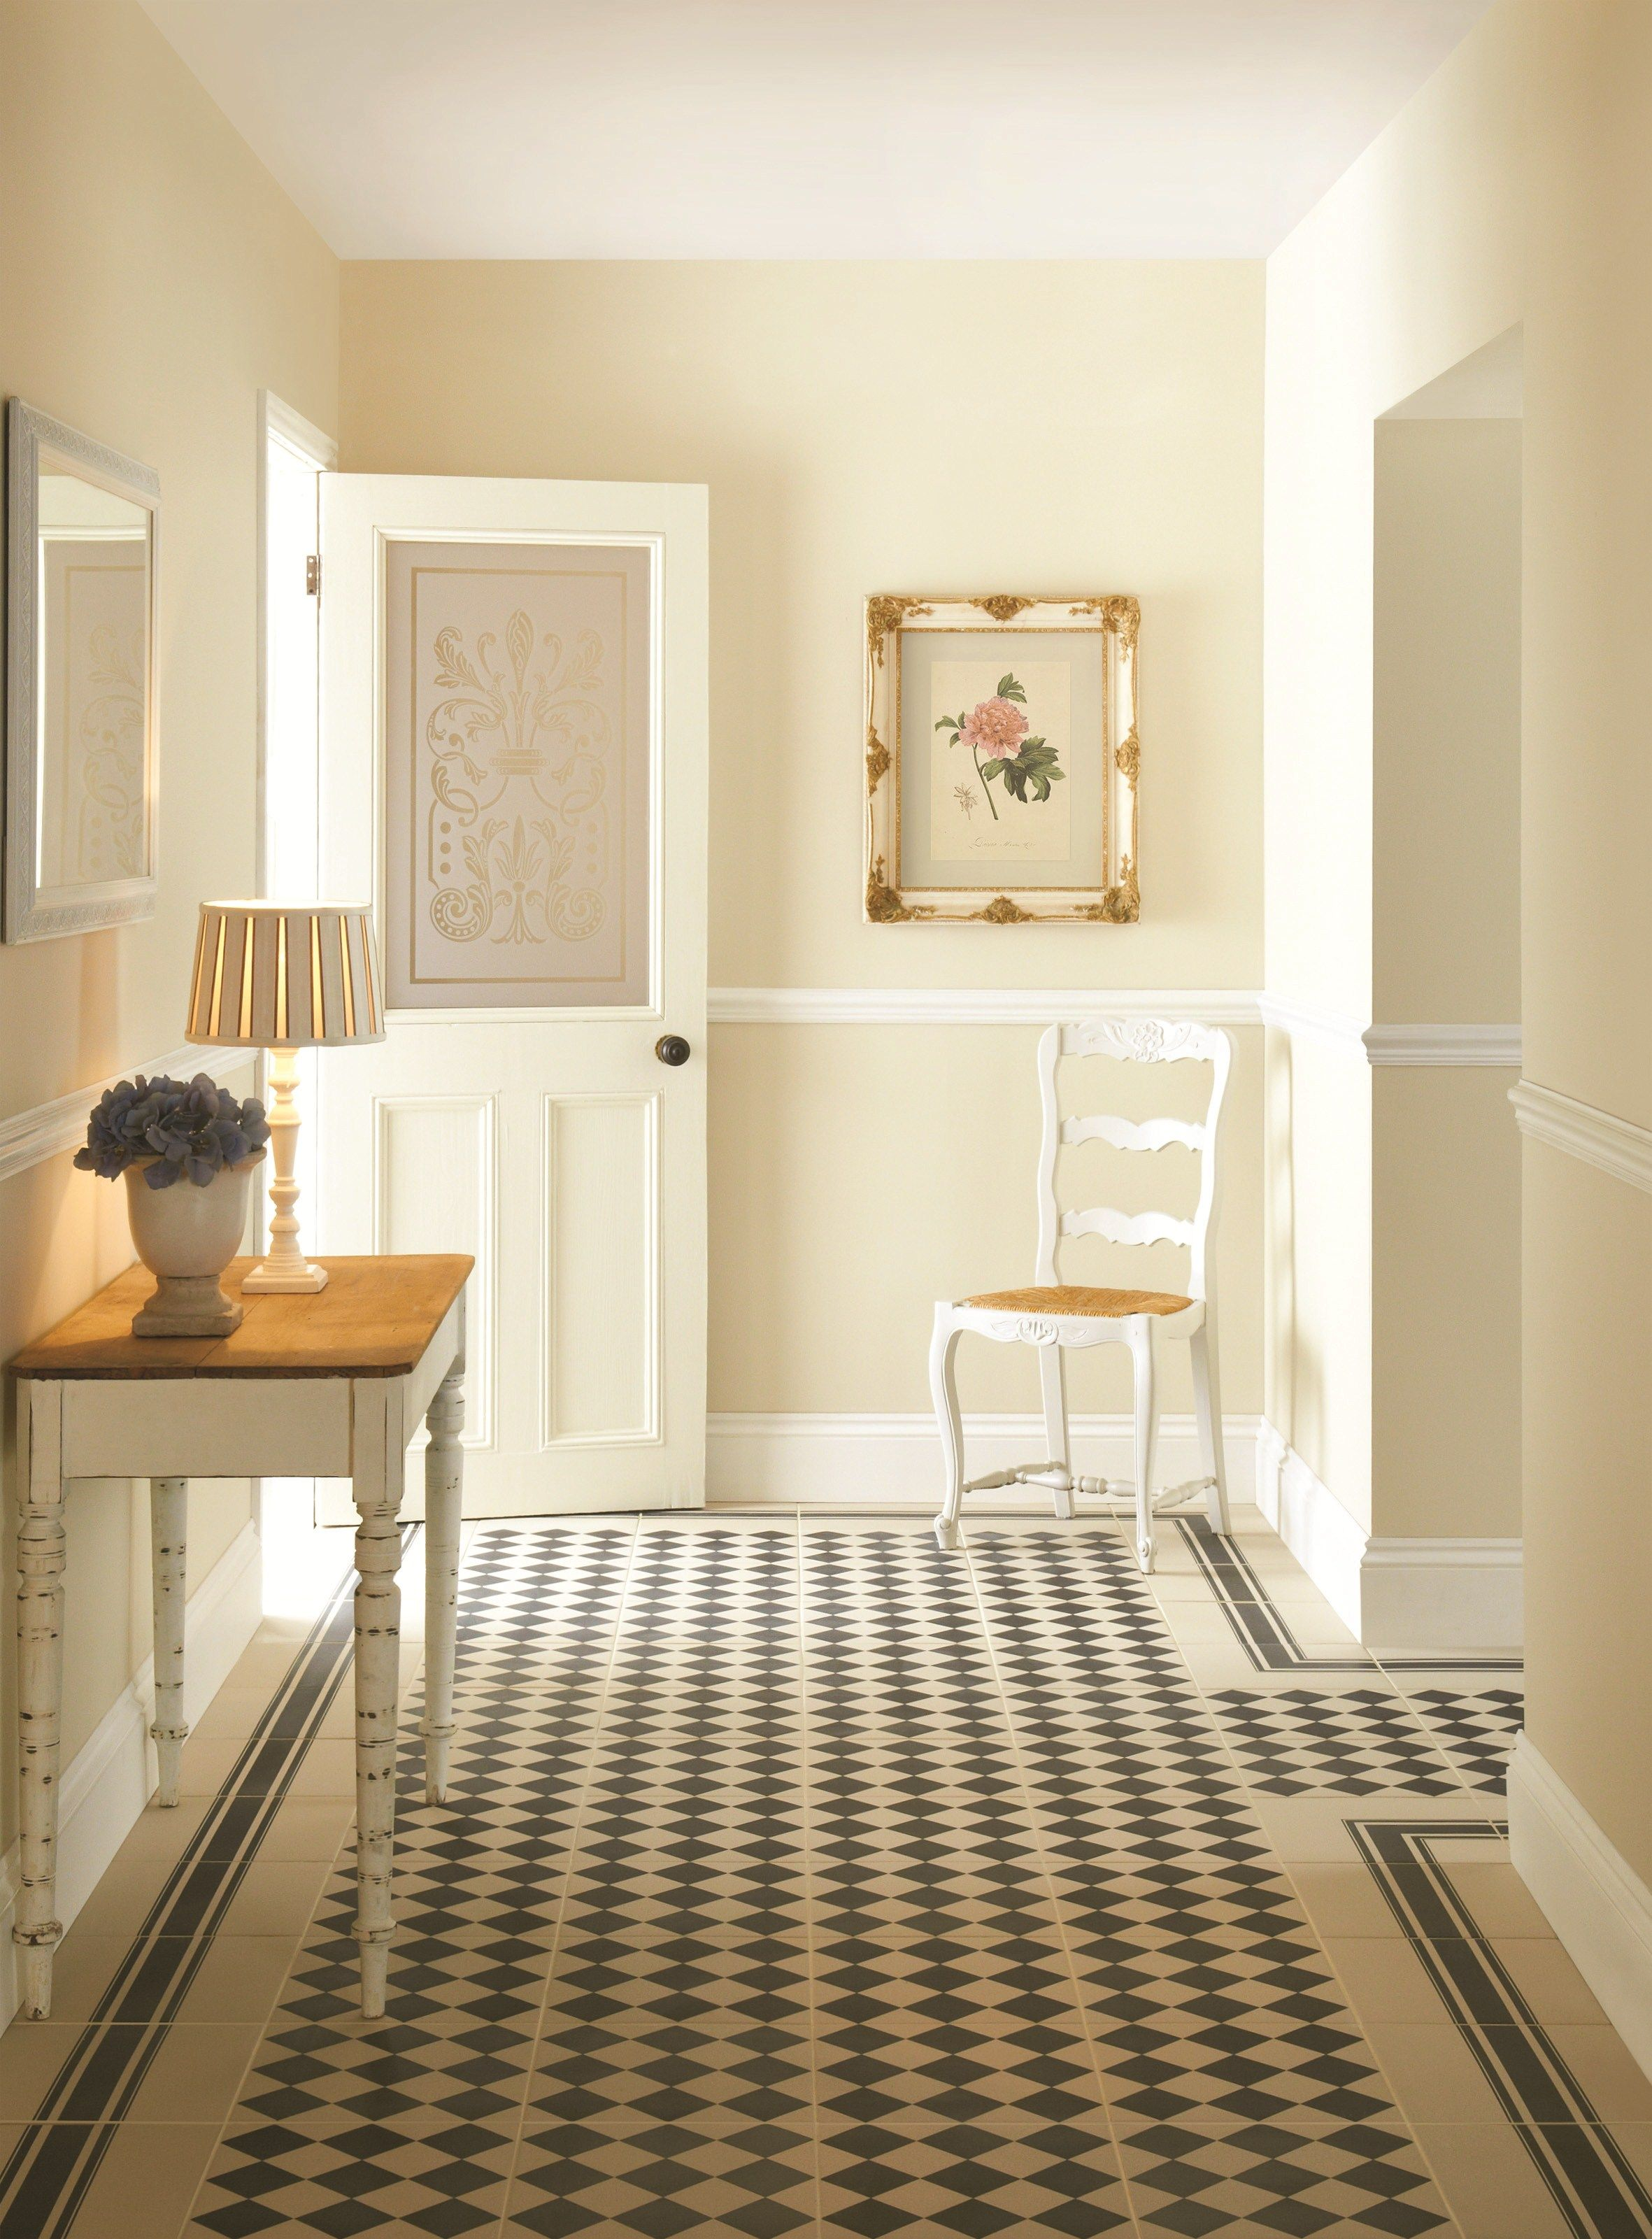 Harlequin tiles from the odyssey collection by original style harlequin range odyssey collection from original style decorative floor tiles dailygadgetfo Image collections